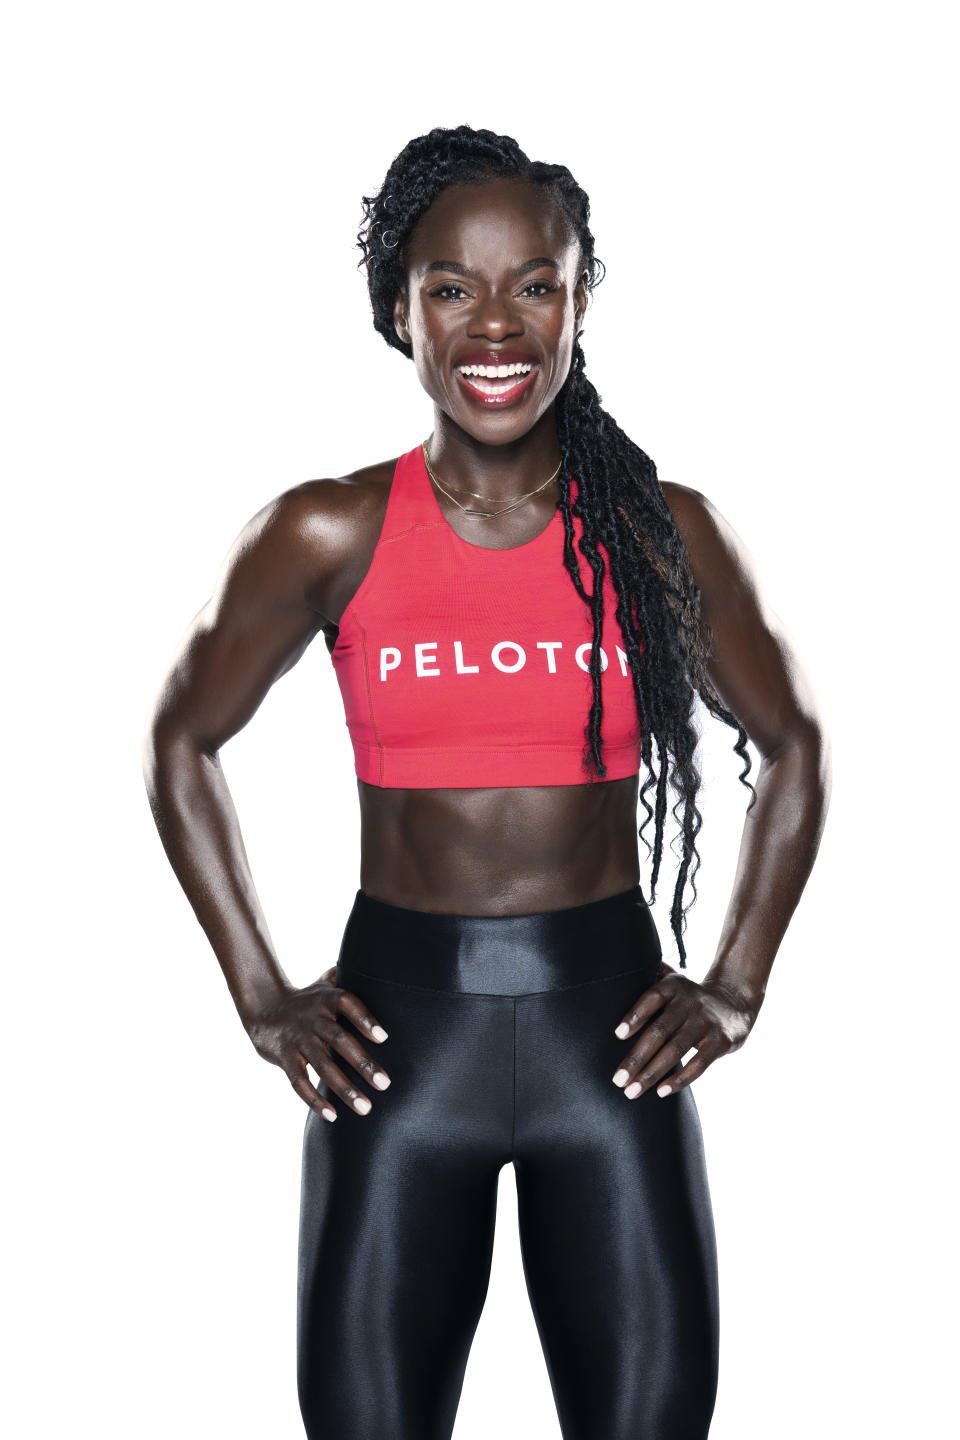 Oyeneyin is a popular Peloton instructor and founder of a the S.P.E.A.K. series. (Photo: Courtesy of Peloton)